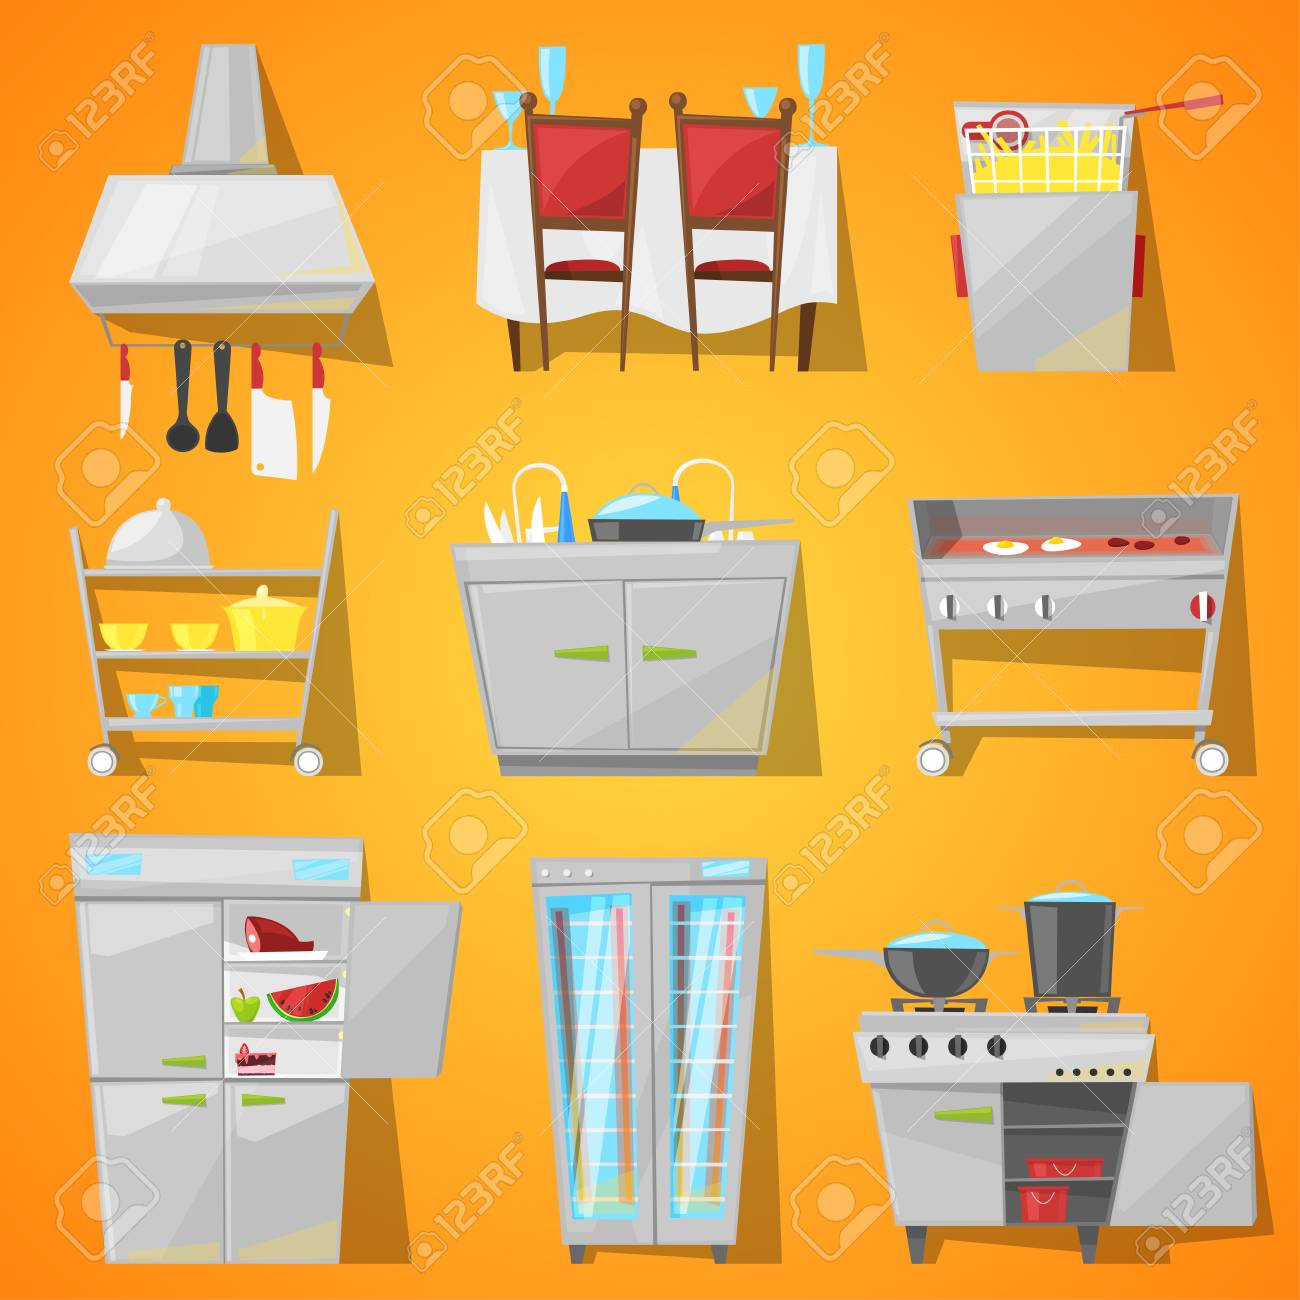 Restaurant Interior Vector Cafe Furniture And Kitchen Appliance Royalty Free Cliparts Vectors And Stock Illustration Image 96892575